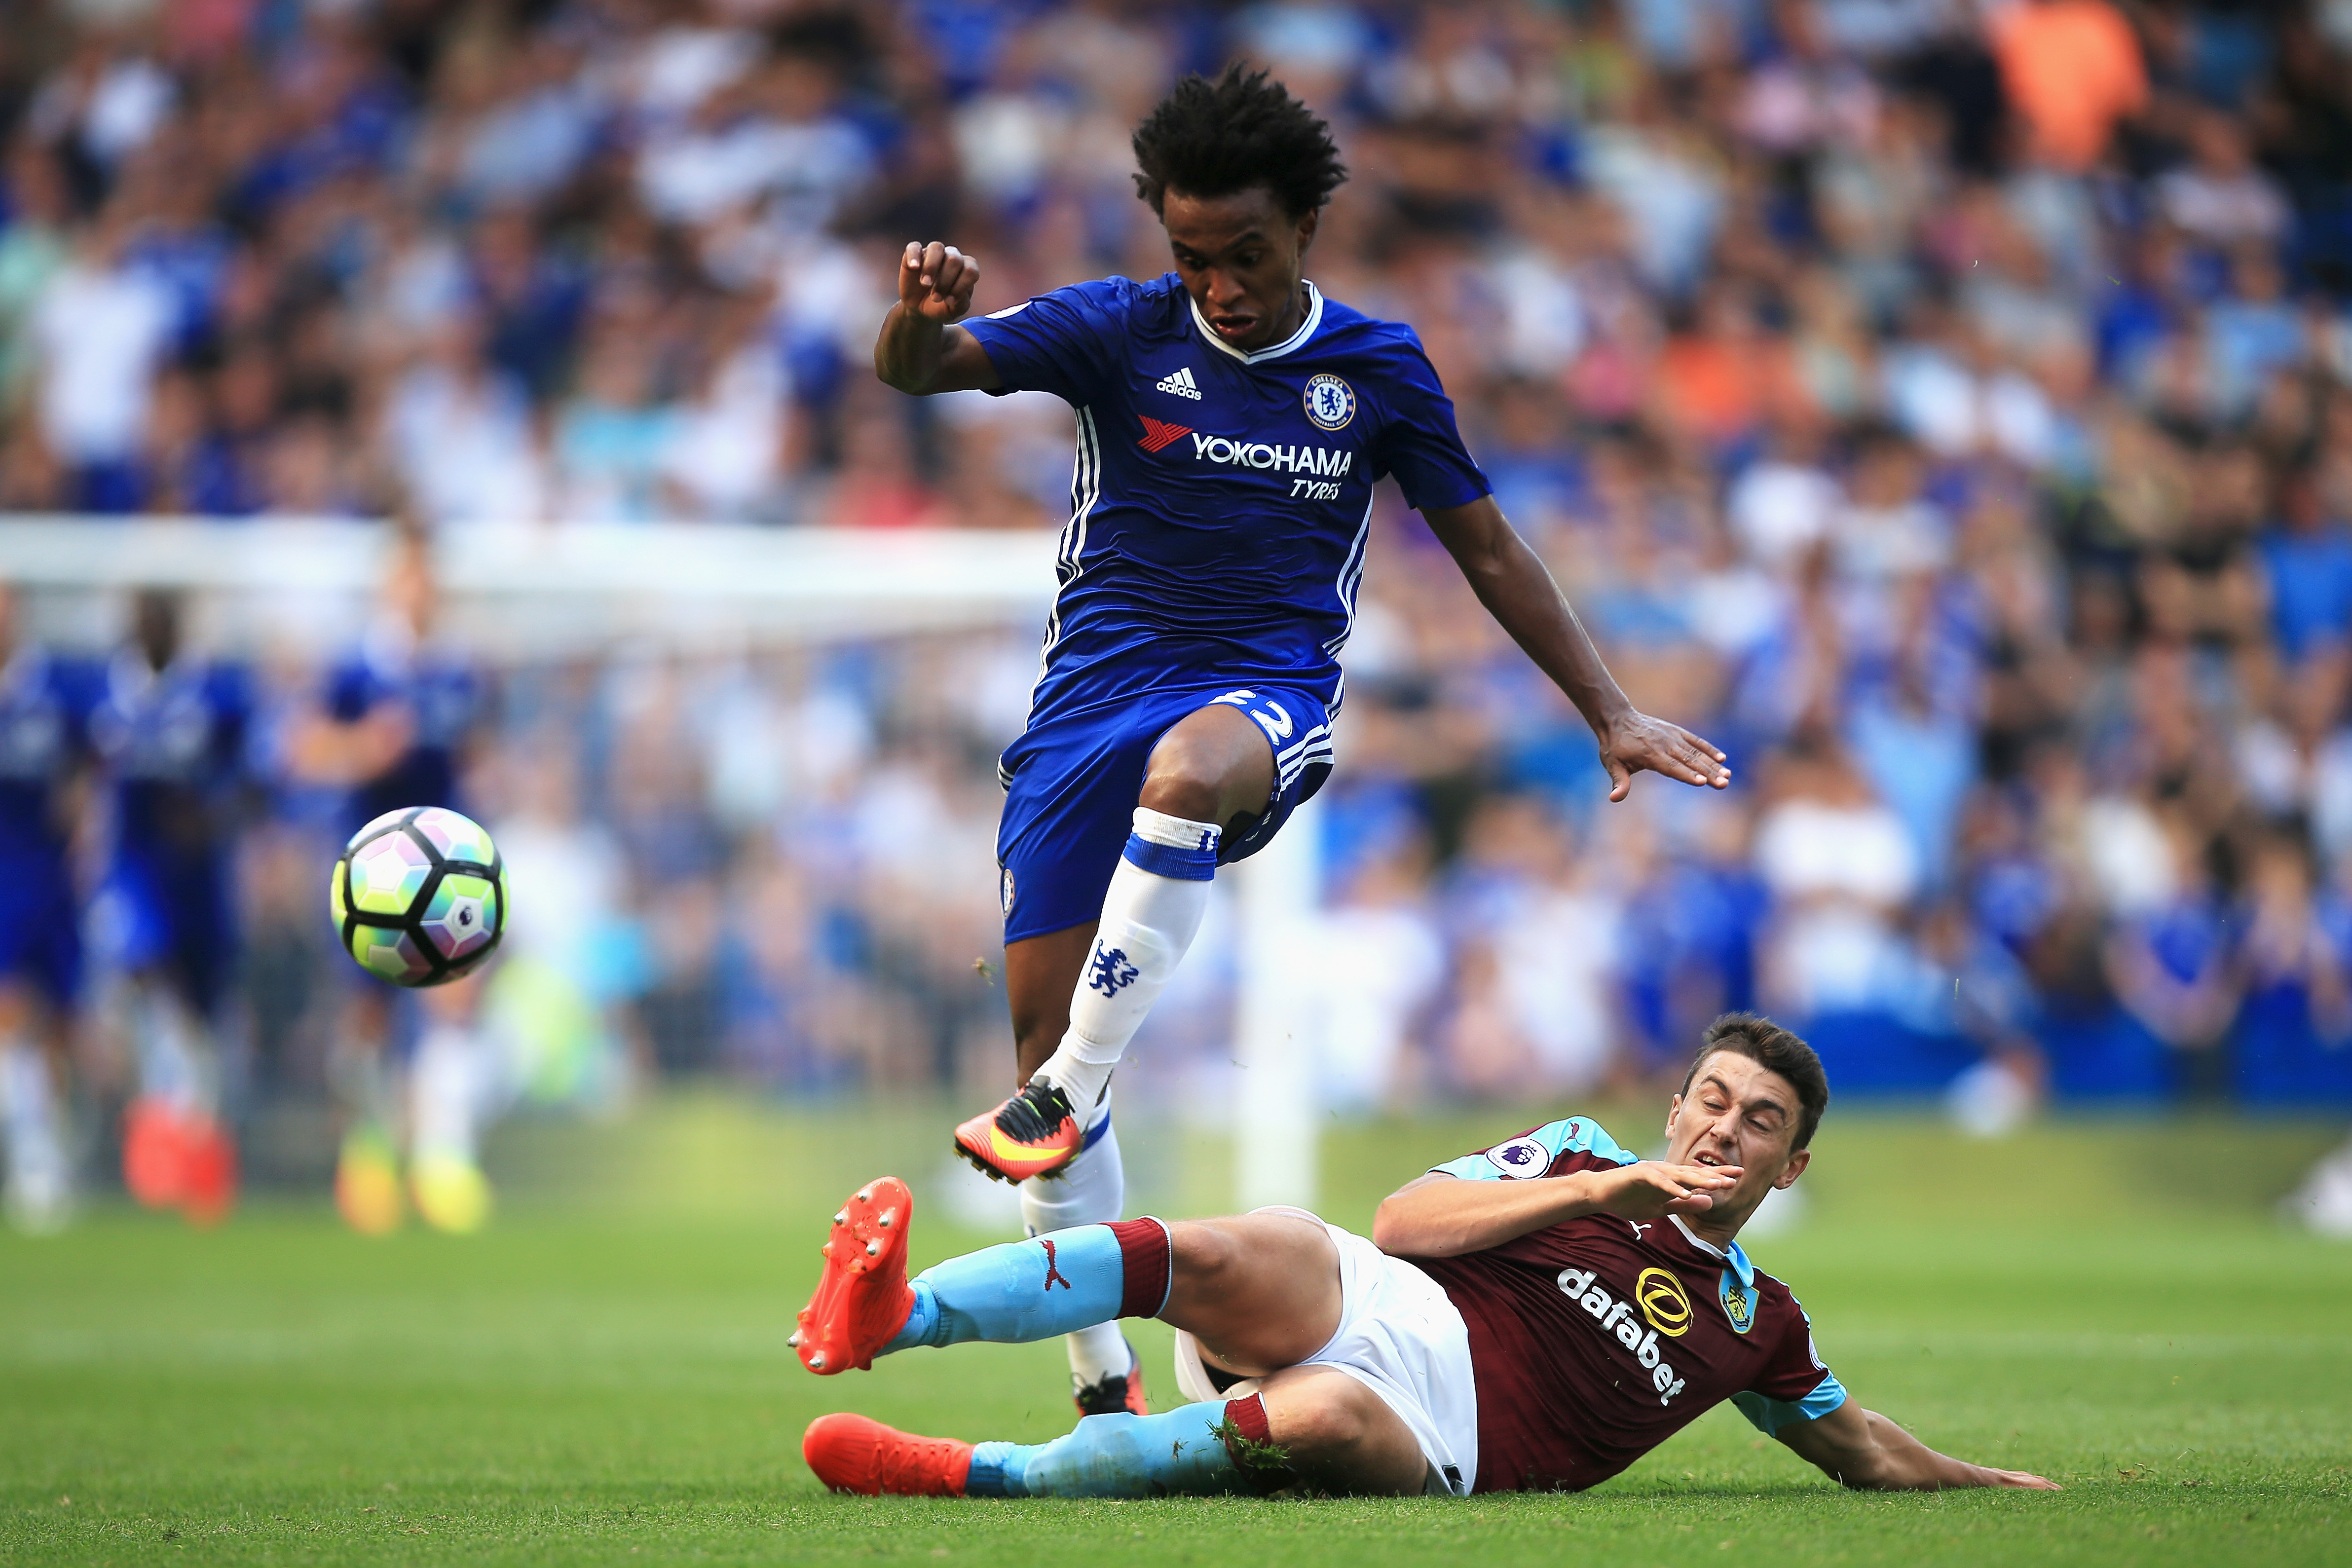 LONDON, ENGLAND - AUGUST 27: Willian of Chelsea (L) is challenged by (R) Michael Keane Eof Burnley during the Premier League match between Chelsea and Burnley at Stamford Bridge on August 27, 2016 in London, England. (Photo by Ben Hoskins/Getty Images)